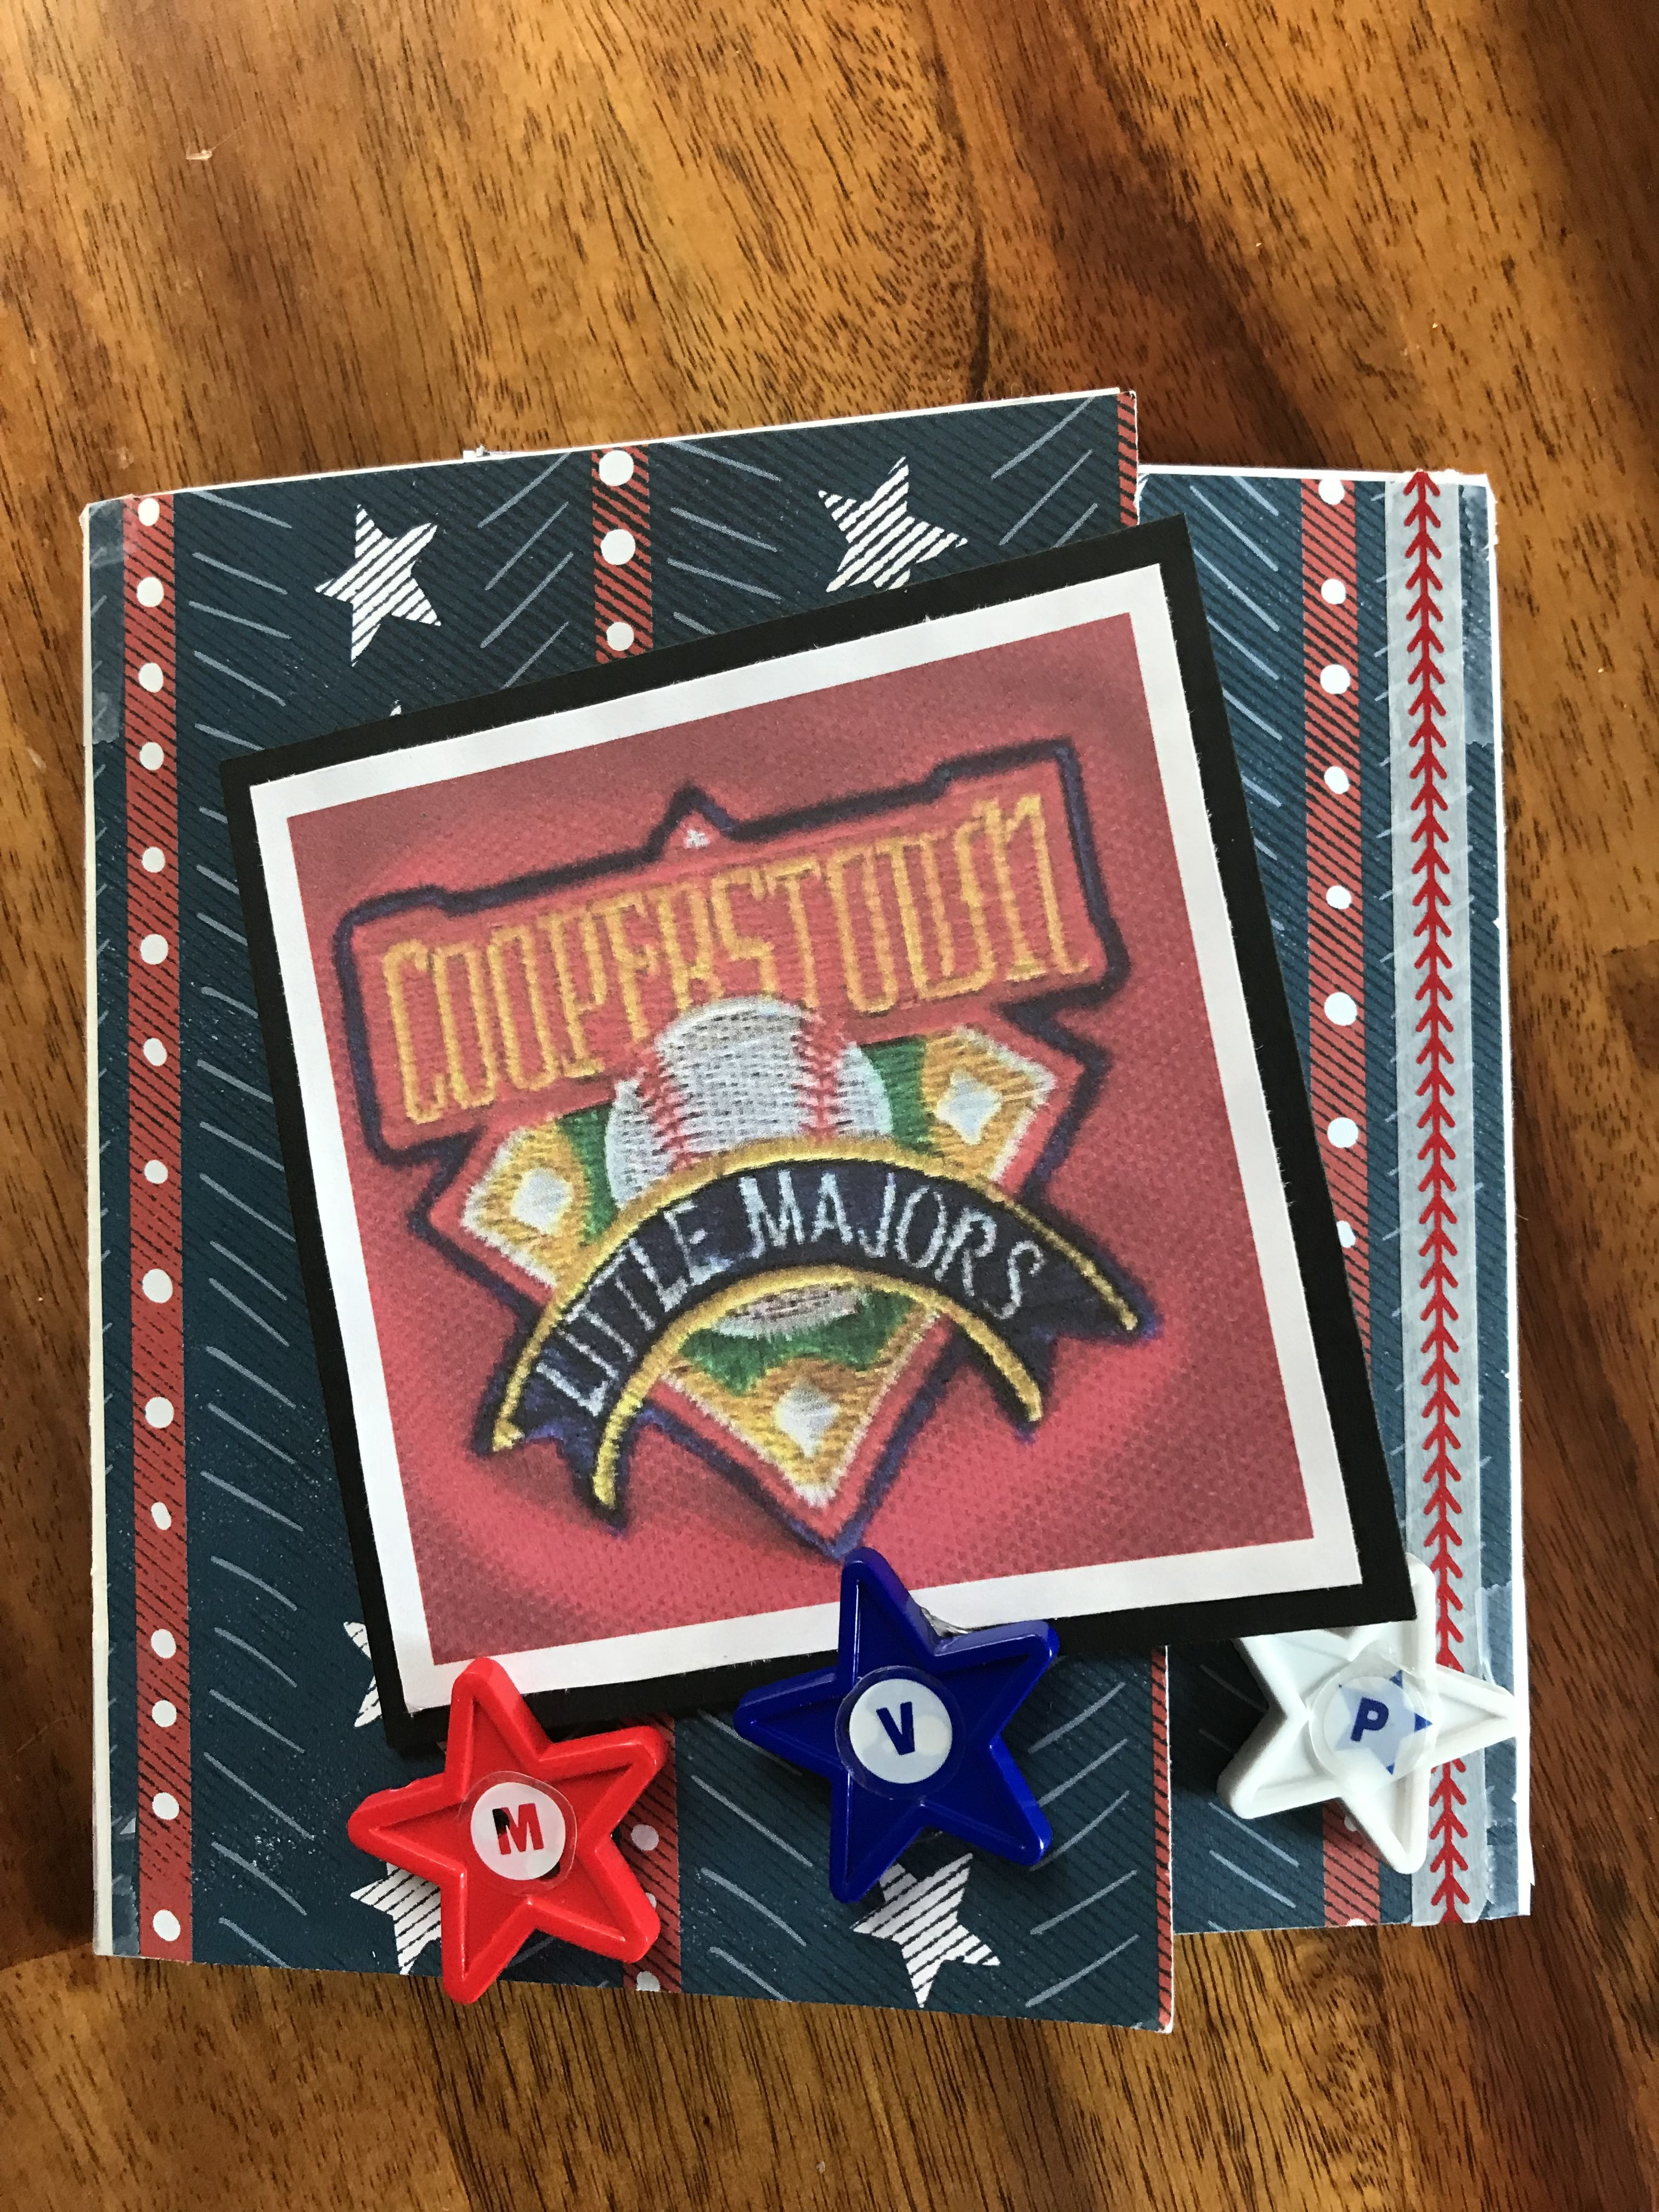 Pin by Cindy Wernert on CINDY'S STASH Cards, Playing